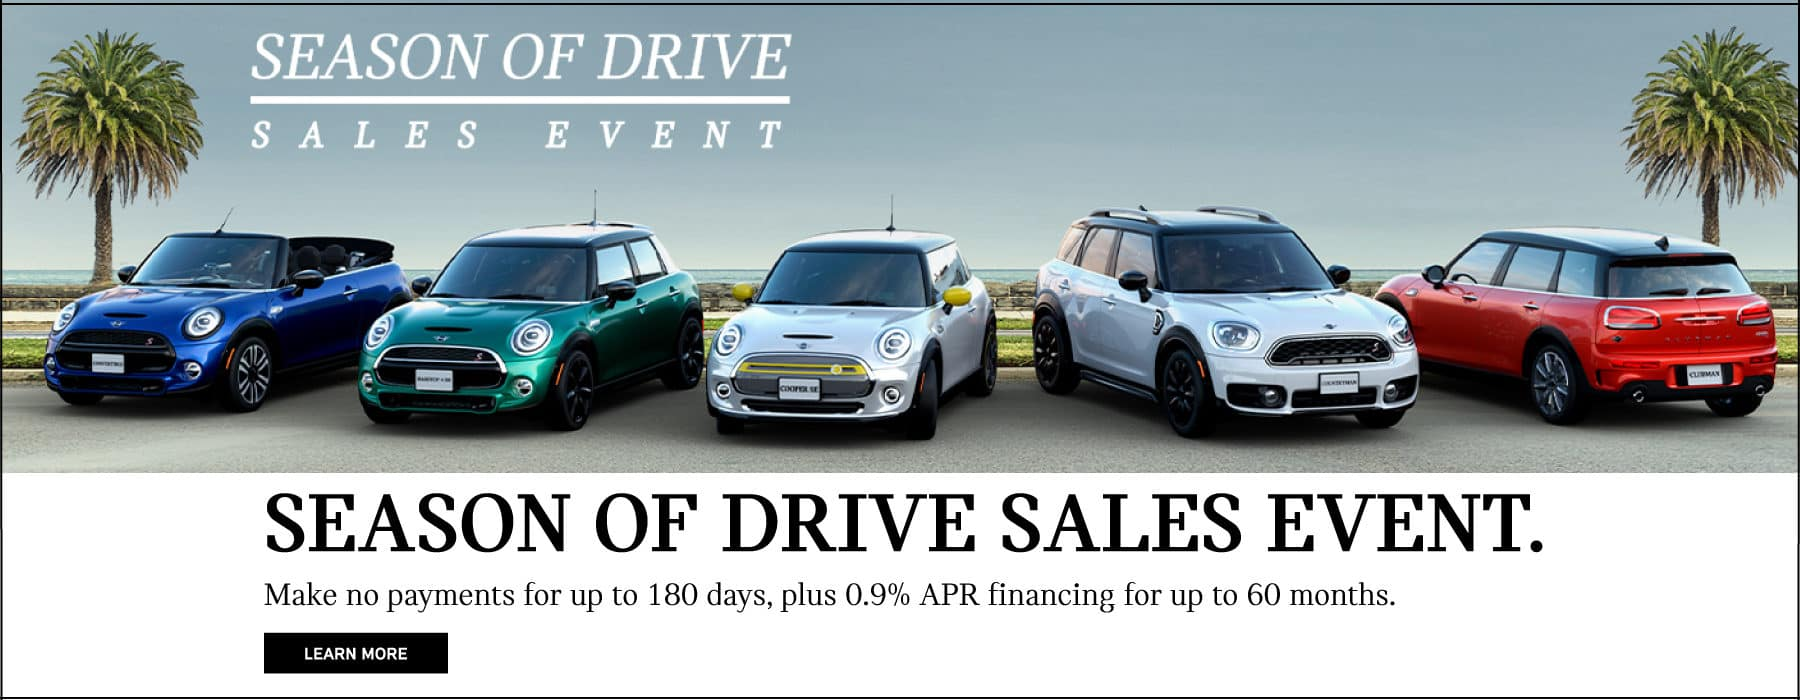 Season of Drive Sales Event. No monthly payment for up to 180 days plus 0.9% APR for 60 months on select MINI Models. Learn More